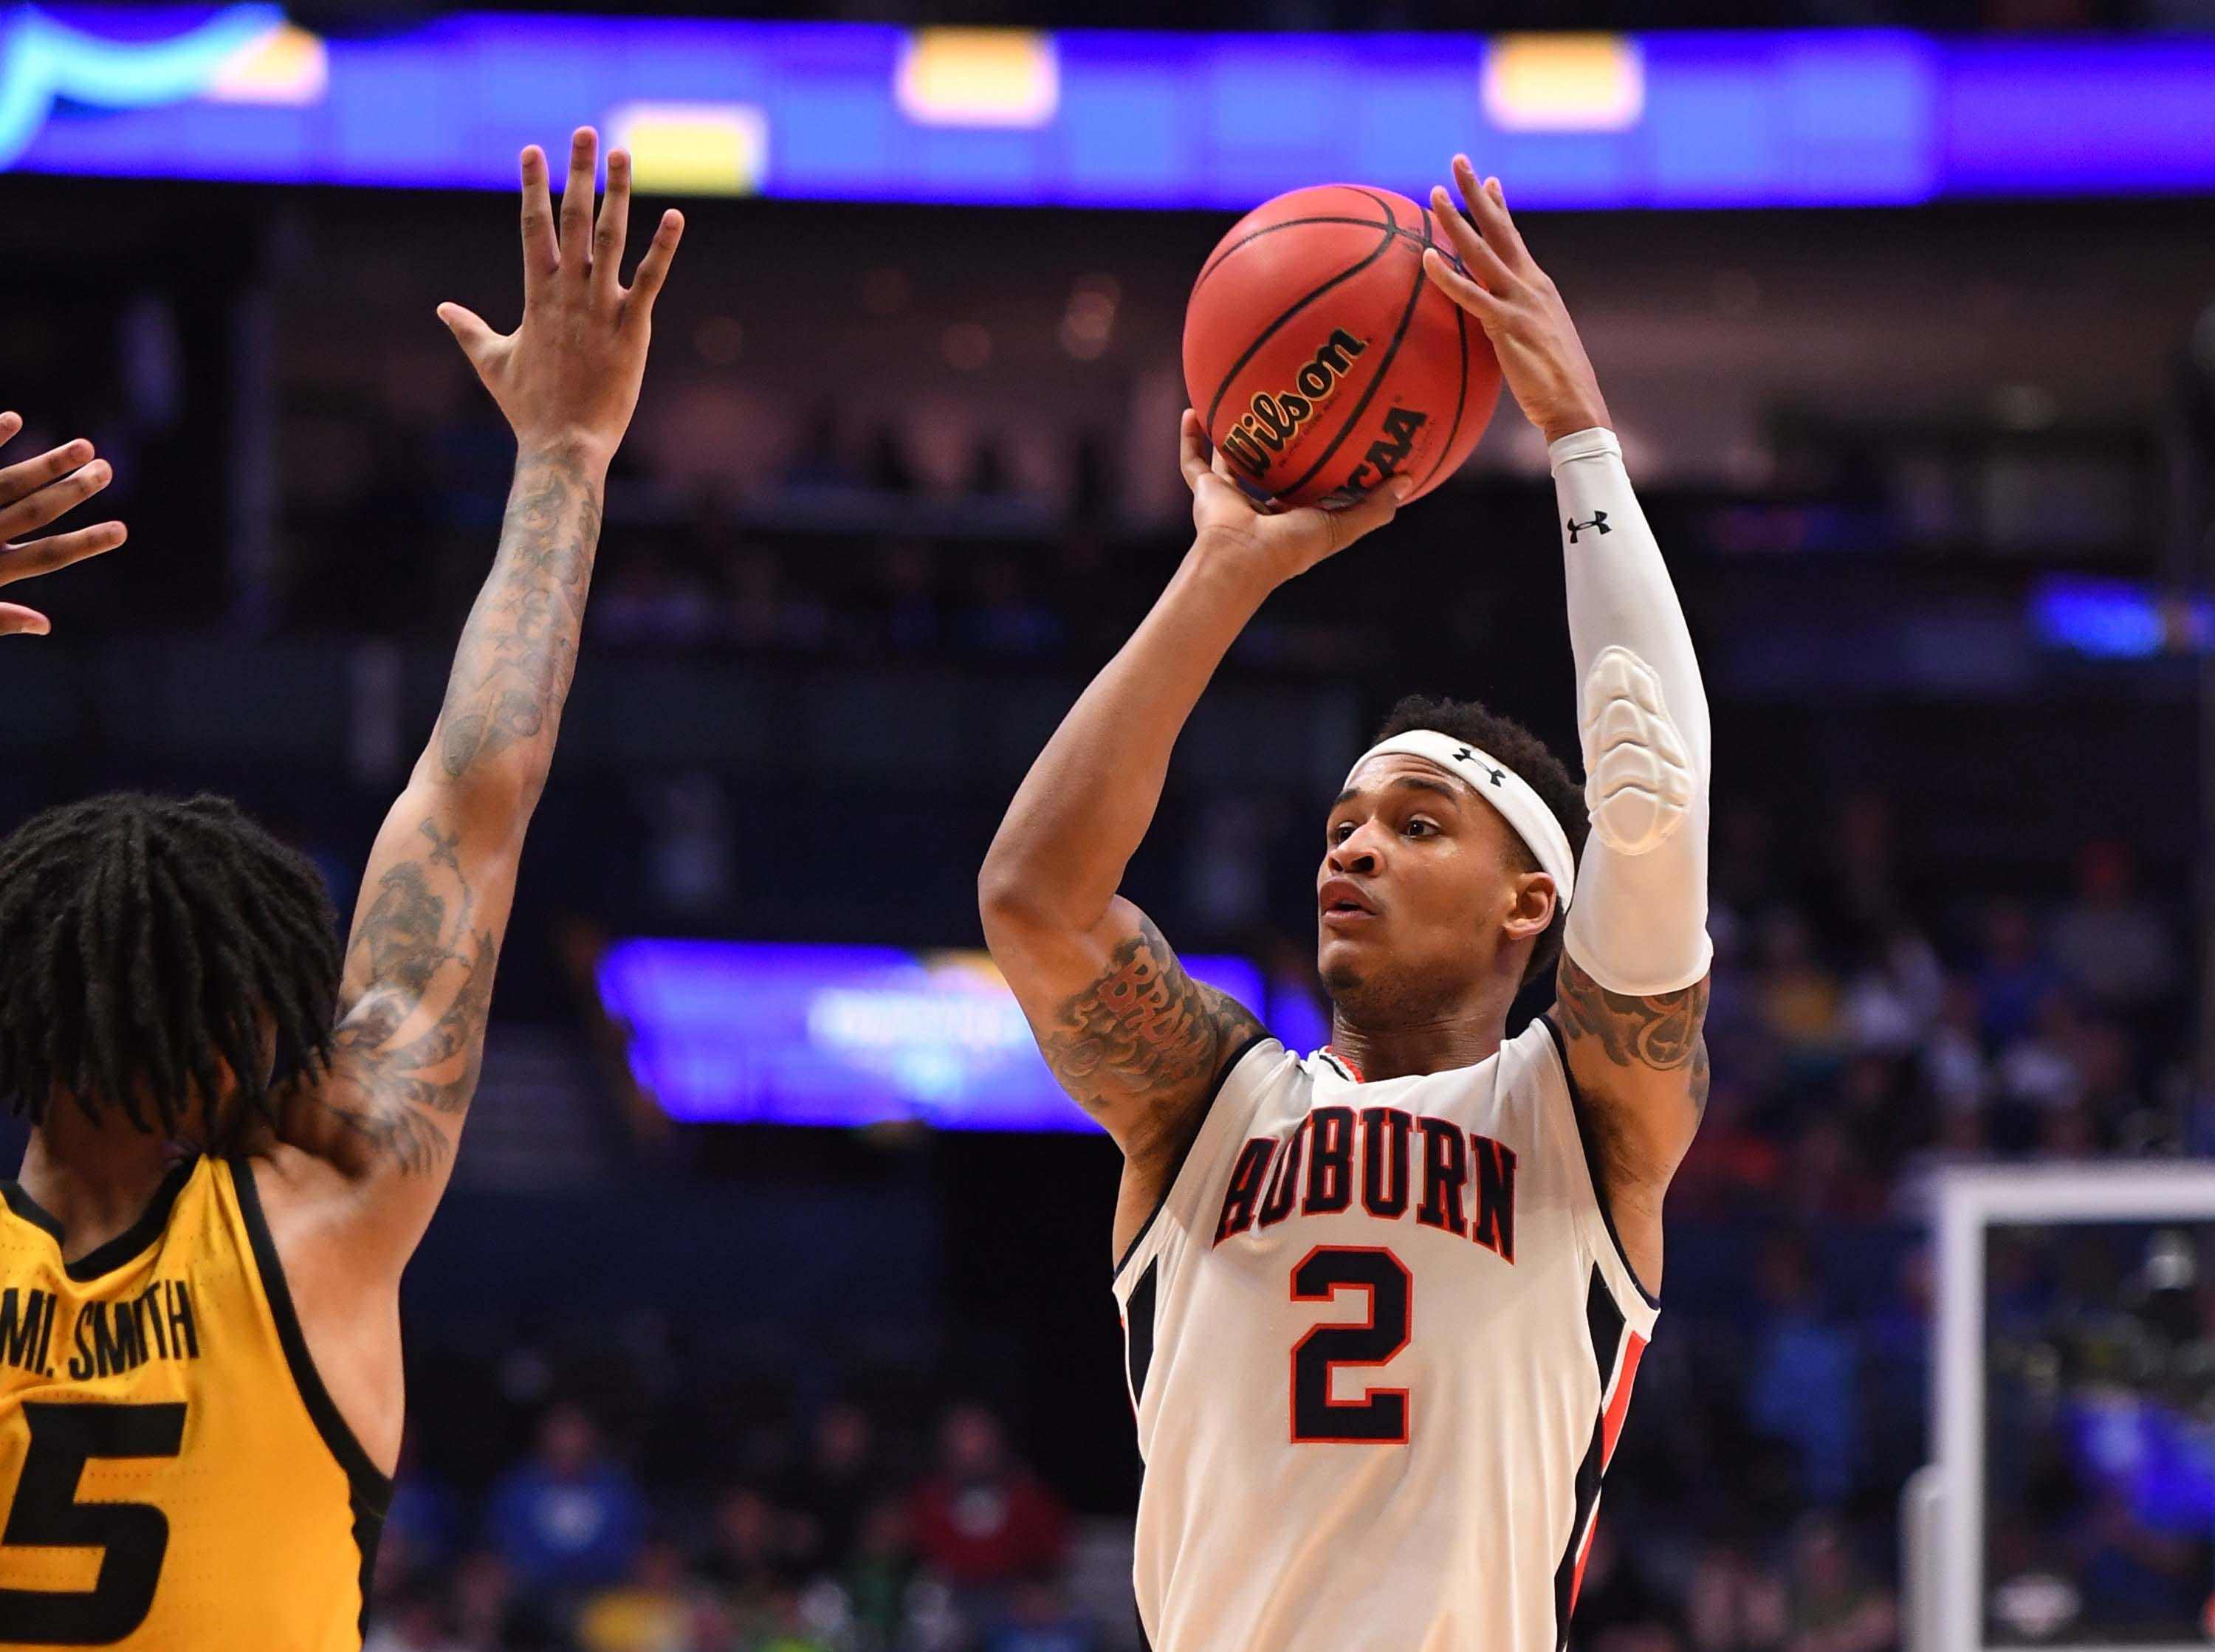 Mar 14, 2019; Nashville, TN, USA; Auburn Tigers guard Bryce Brown (2) shoots over Missouri Tigers forward Mitchell Smith (5) during the first half of the SEC conference tournament at Bridgestone Arena. Mandatory Credit: Christopher Hanewinckel-USA TODAY Sports